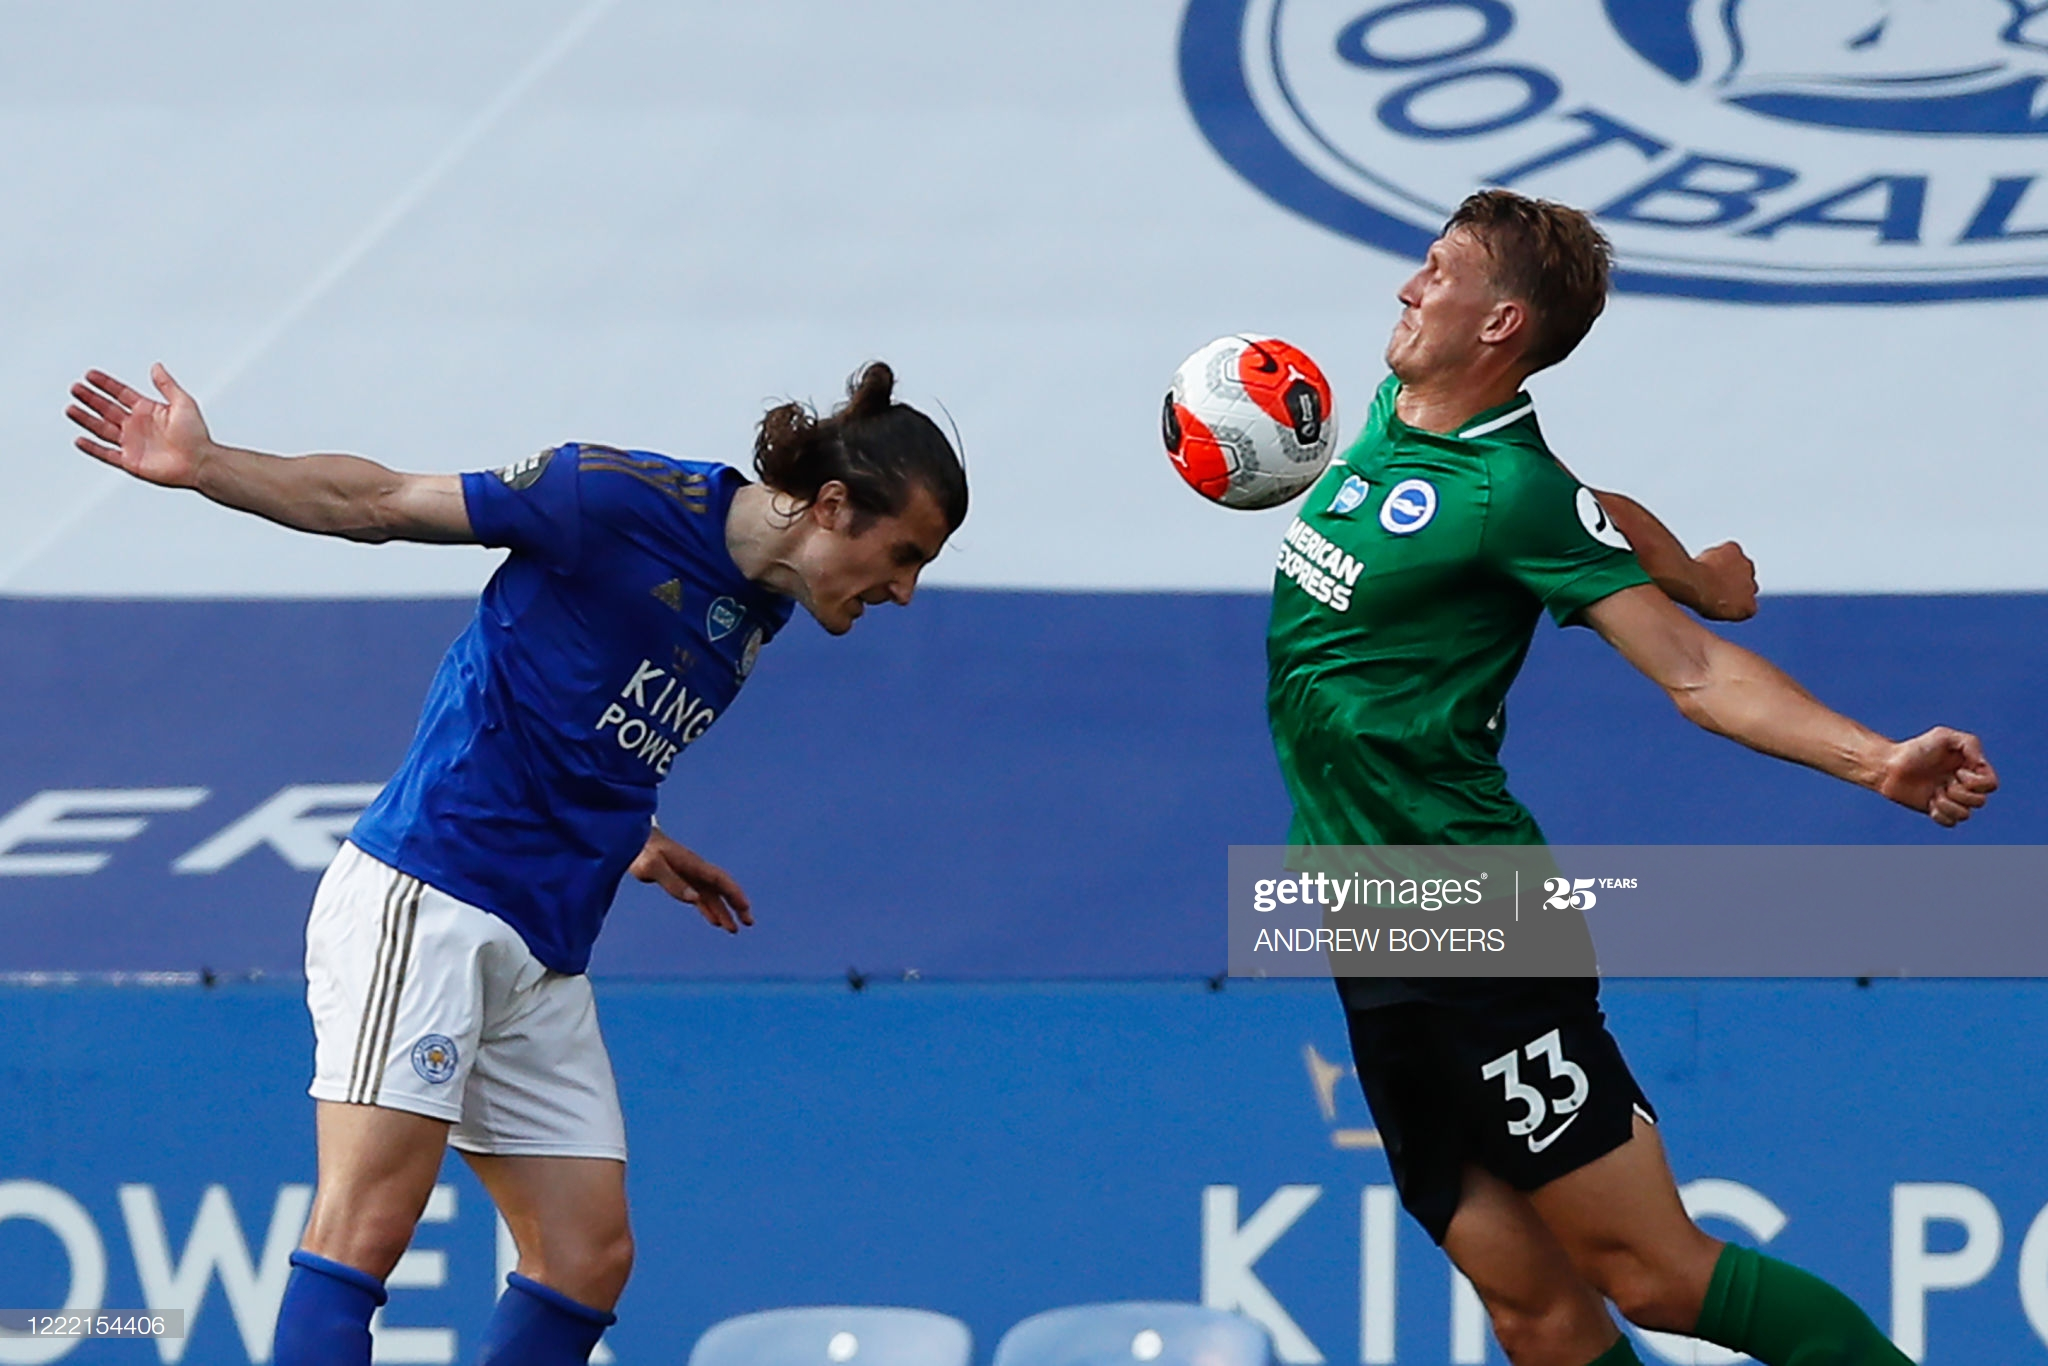 Leicester City's Turkish defender Caglar Soyuncu (L) vies for the ball with Brighton's English defender Dan Burn  during the English Premier League football match between Leicester City and Brighton and Hove Albion at the King Power Stadium in Leicester, central England, on June 23, 2020. (Photo by ANDREW BOYERS / POOL / AFP) / RESTRICTED TO EDITORIAL USE. No use with unauthorized audio, video, data, fixture lists, club/league logos or 'live' services. Online in-match use limited to 120 images. An additional 40 images may be used in extra time. No video emulation. Social media in-match use limited to 120 images. An additional 40 images may be used in extra time. No use in betting publications, games or single club/league/player publications. /  (Photo by ANDREW BOYERS/POOL/AFP via Getty Images)